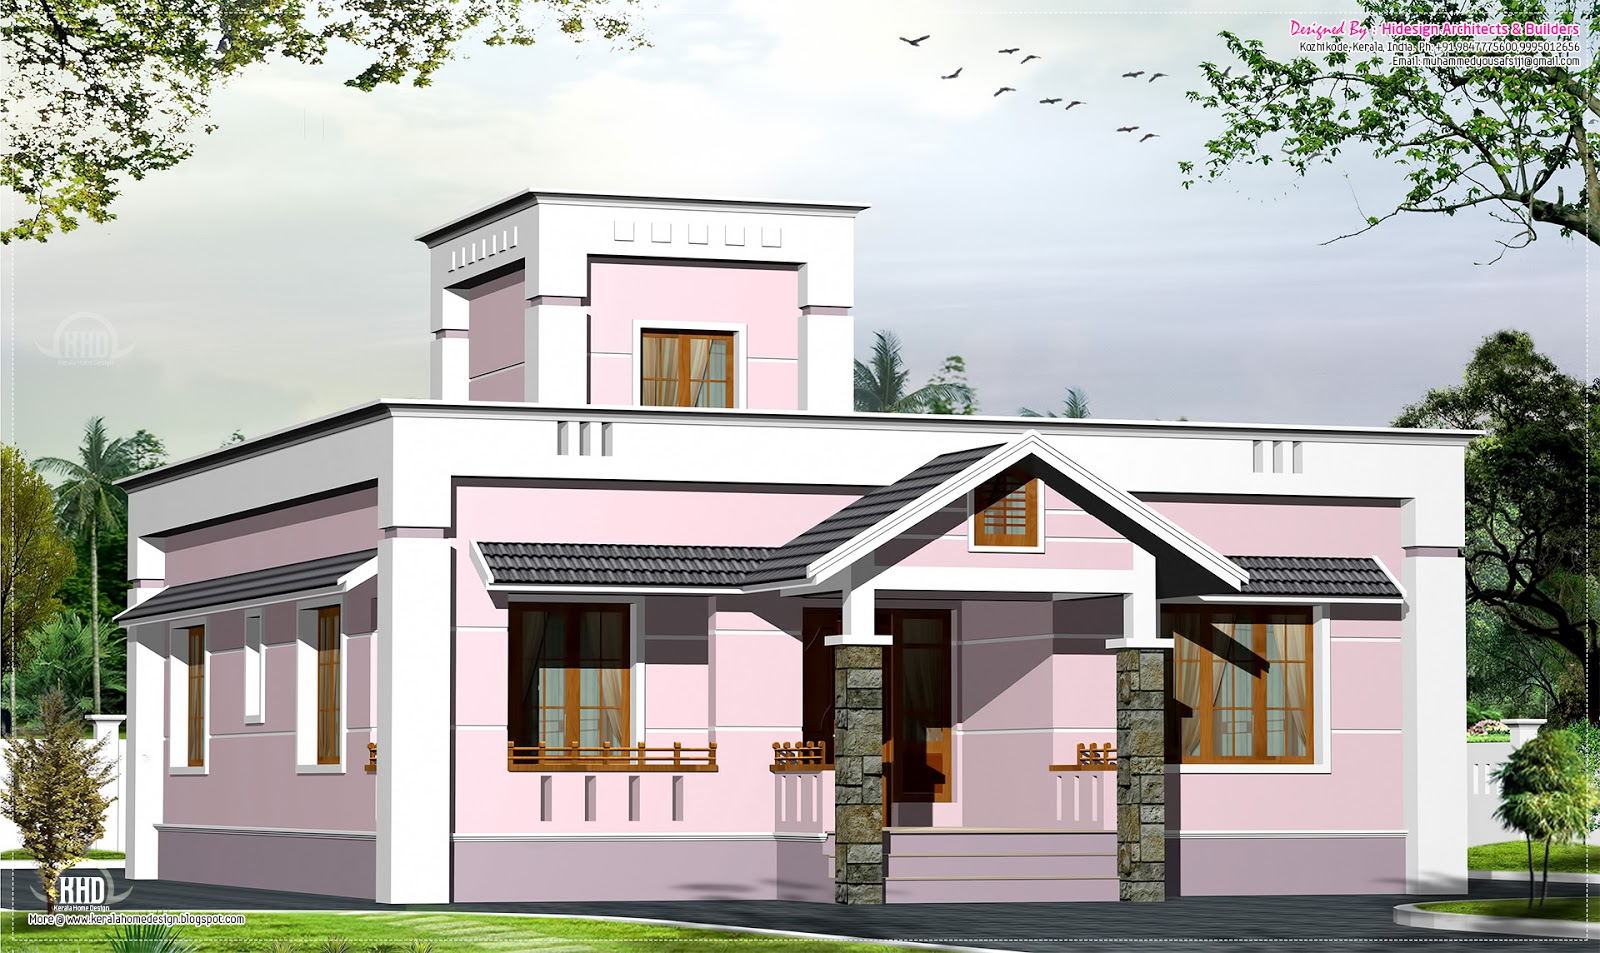 Northwest home design 18481 hd wallpapers background for Northwest style house plans